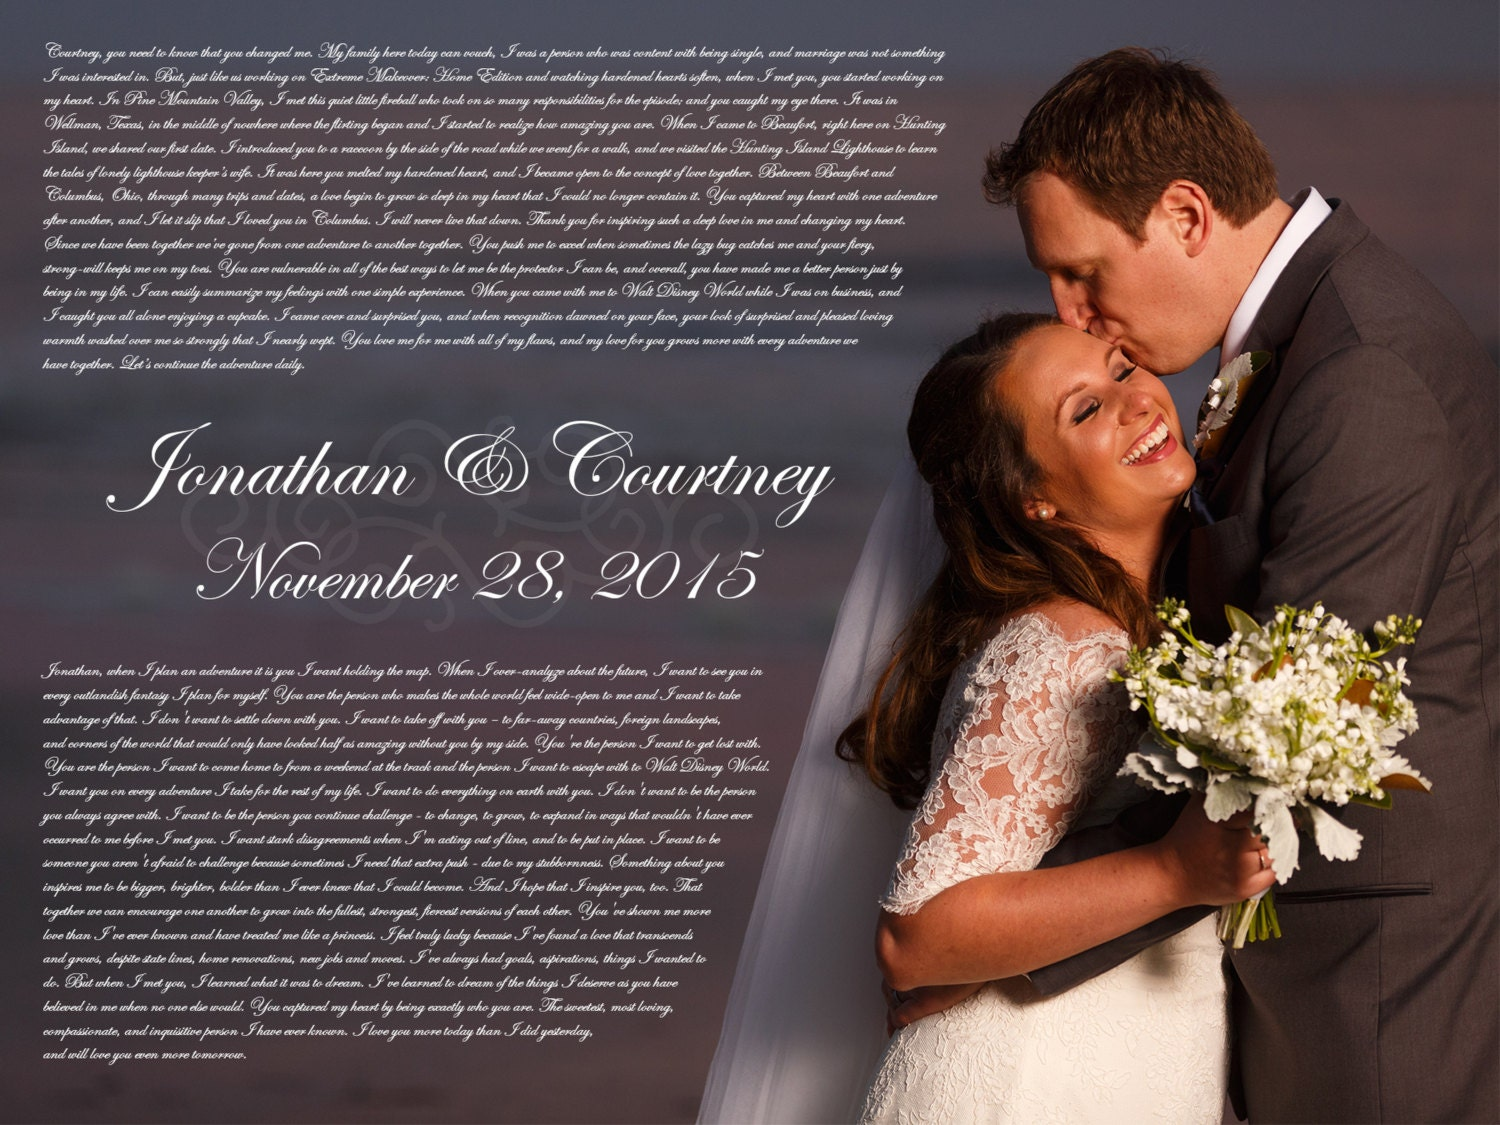 Wedding Day Gift For Wife: Valentines Gift For Wife Poster With Wedding Vows Or